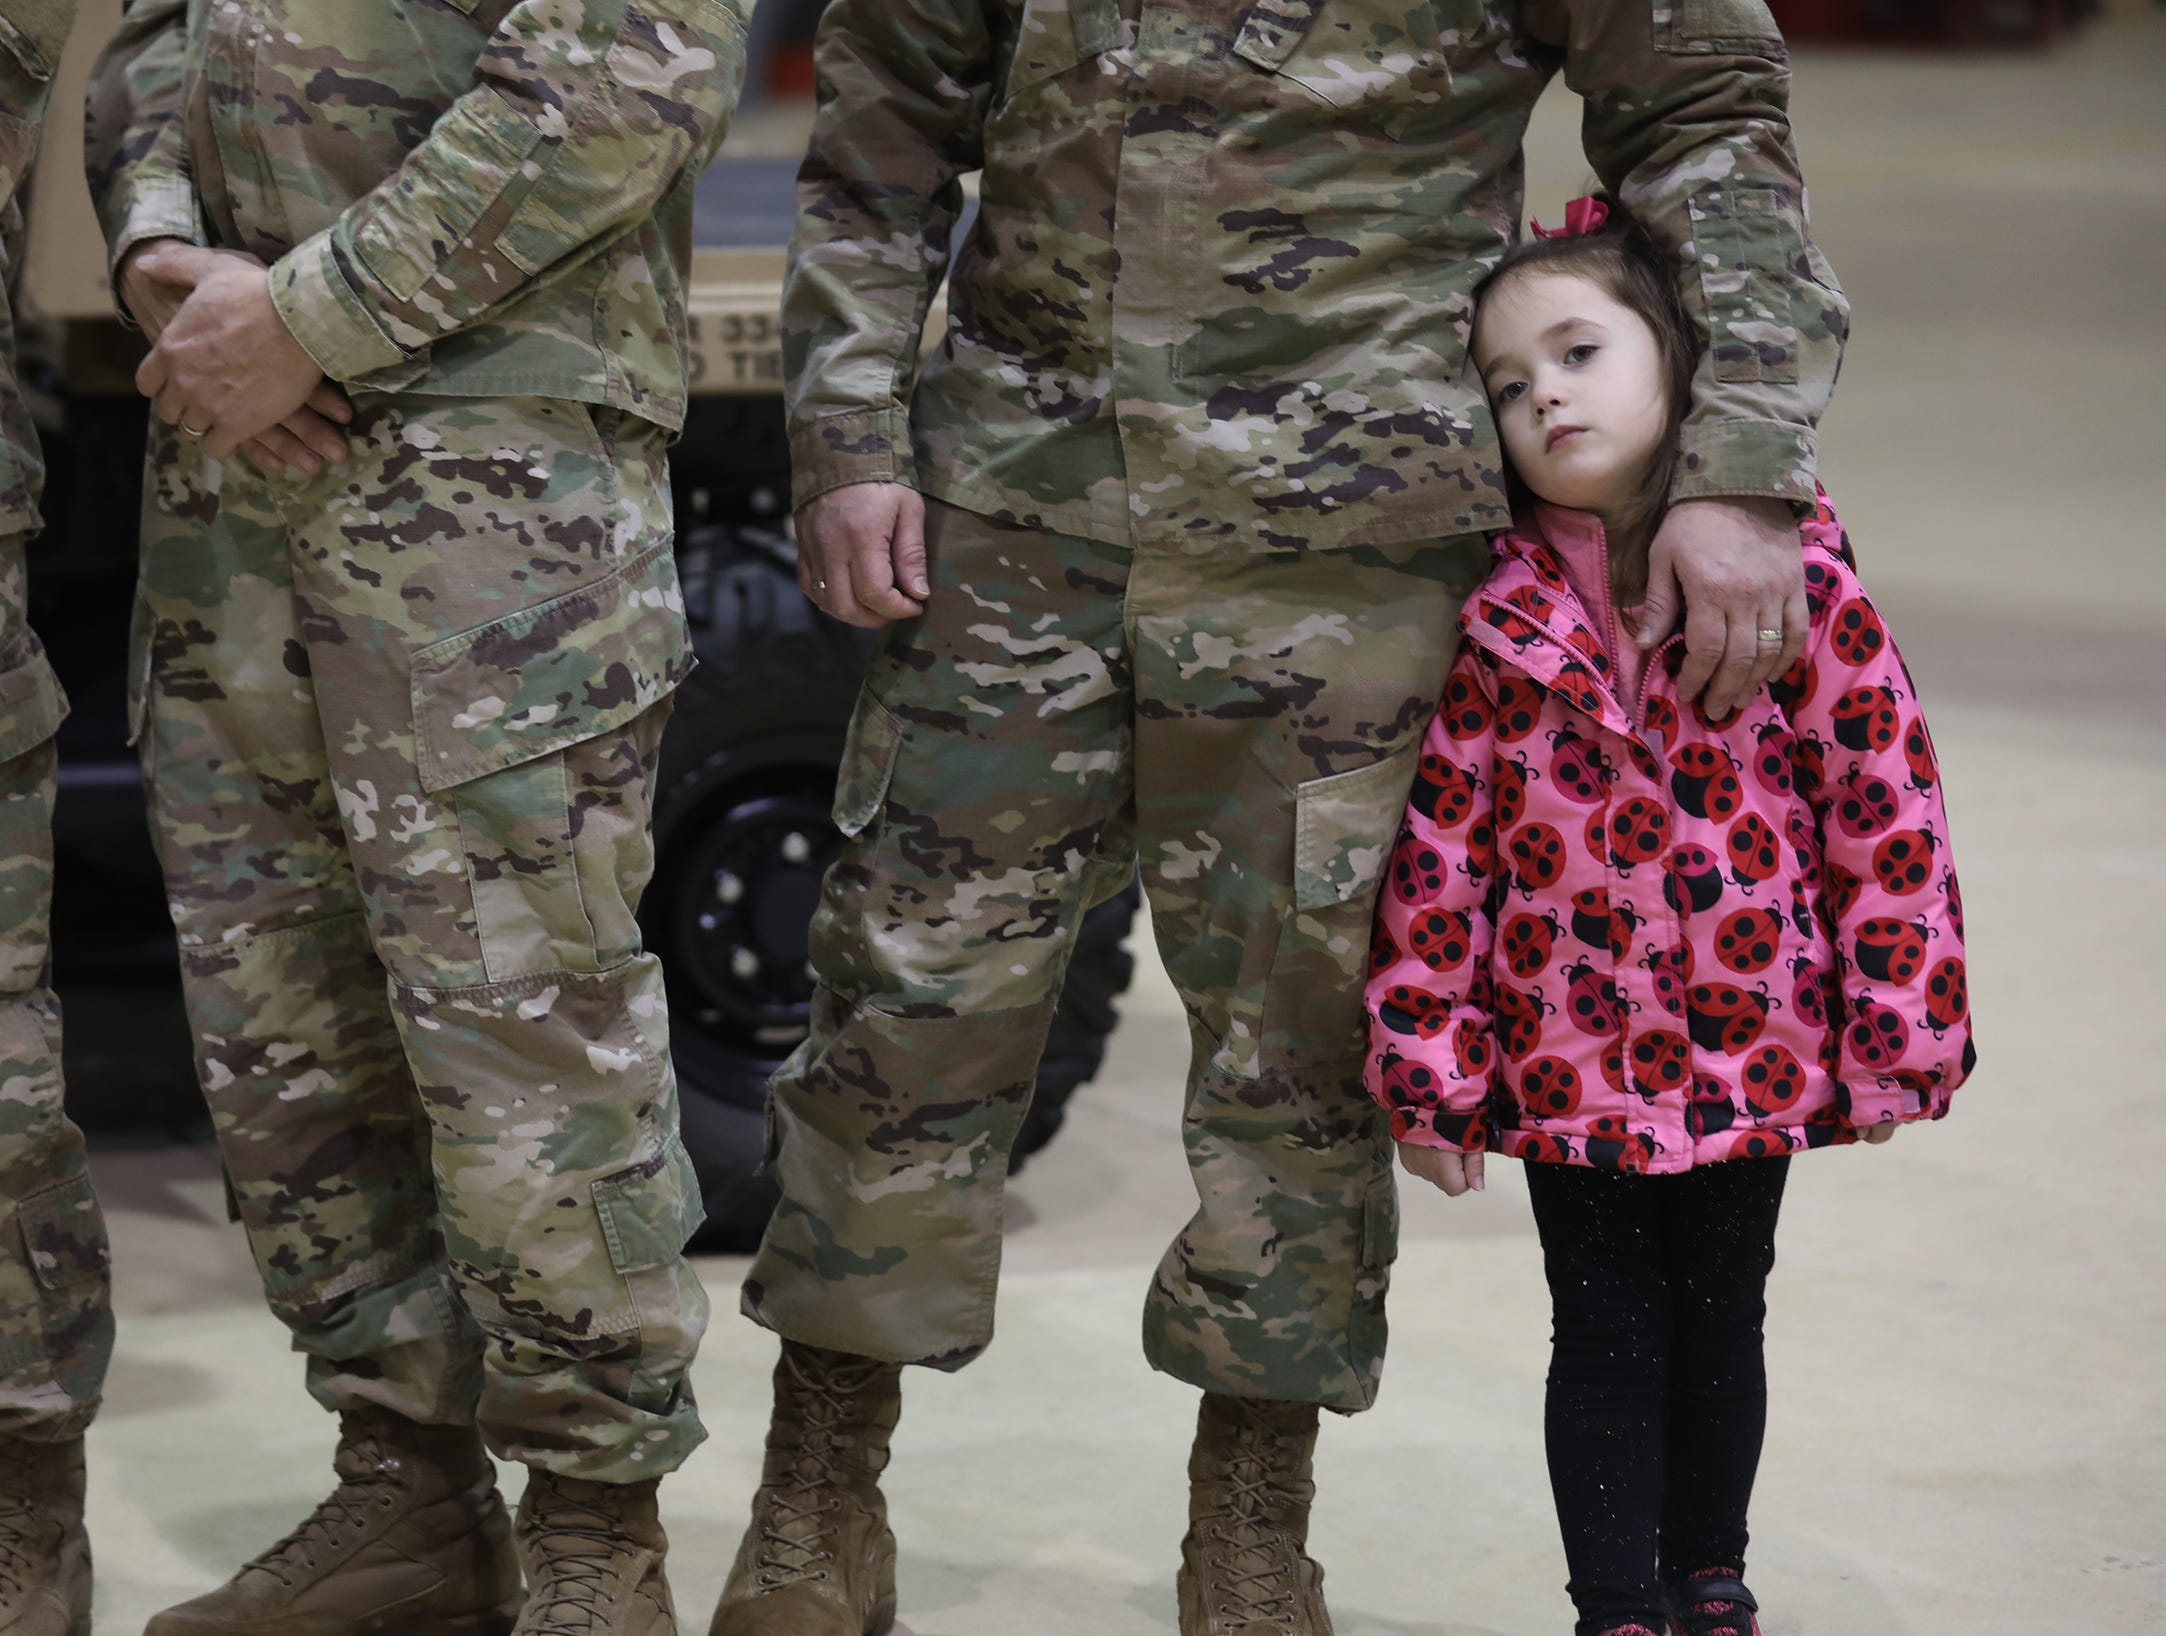 THE PHOTO:  Gov. Andrew Cuomo visits Rochester to talk about preparations in case of damage caused by strong winds expected in the area.  Kimley Maloney, 4, of Irondequoit, stands next to her father, U.S. Army Sgt. First Class Joe Maloney, as they wait for the governor's arrival for a press conference at the U.S. Army National Guard airport hangar.  FROM TINA:  I actually forgot to send this photo as a standalone (a slice of life image that runs without a story) that could be used in the paper if there's space.  I was running to the next assignment and it slipped my mind.  She caught my eye because of how she was always leaning into her father and the pink stool out against the camouflage.